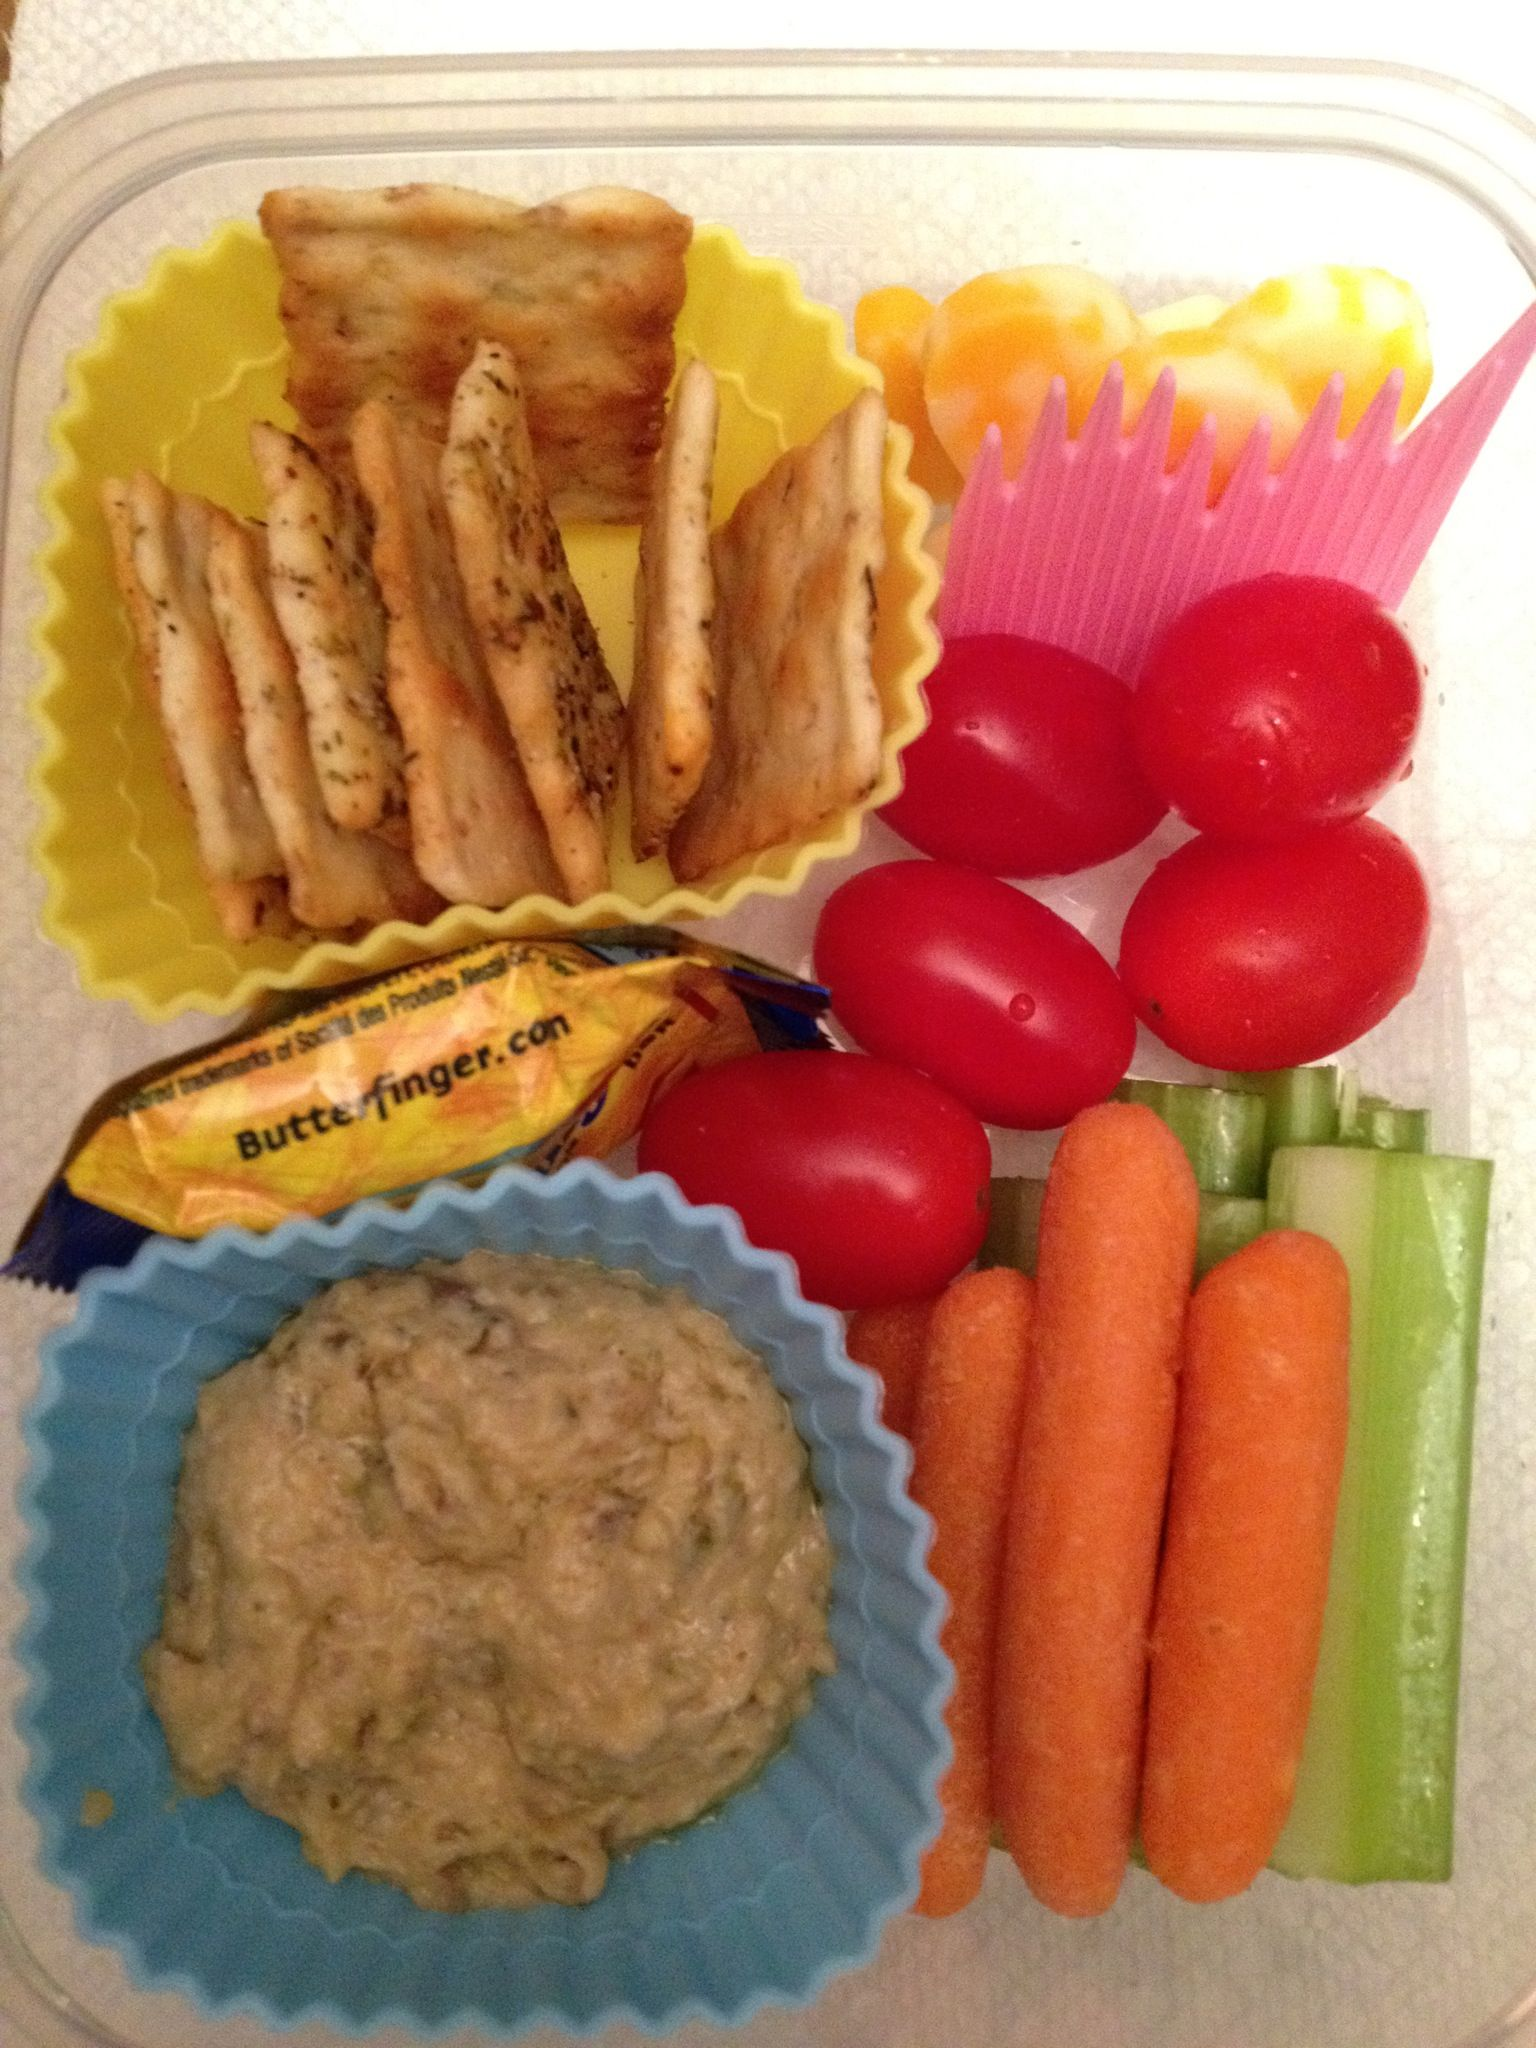 Vegetarian bento lunch - hummus, crackers, cheese cutouts, fresh veggies for dipping